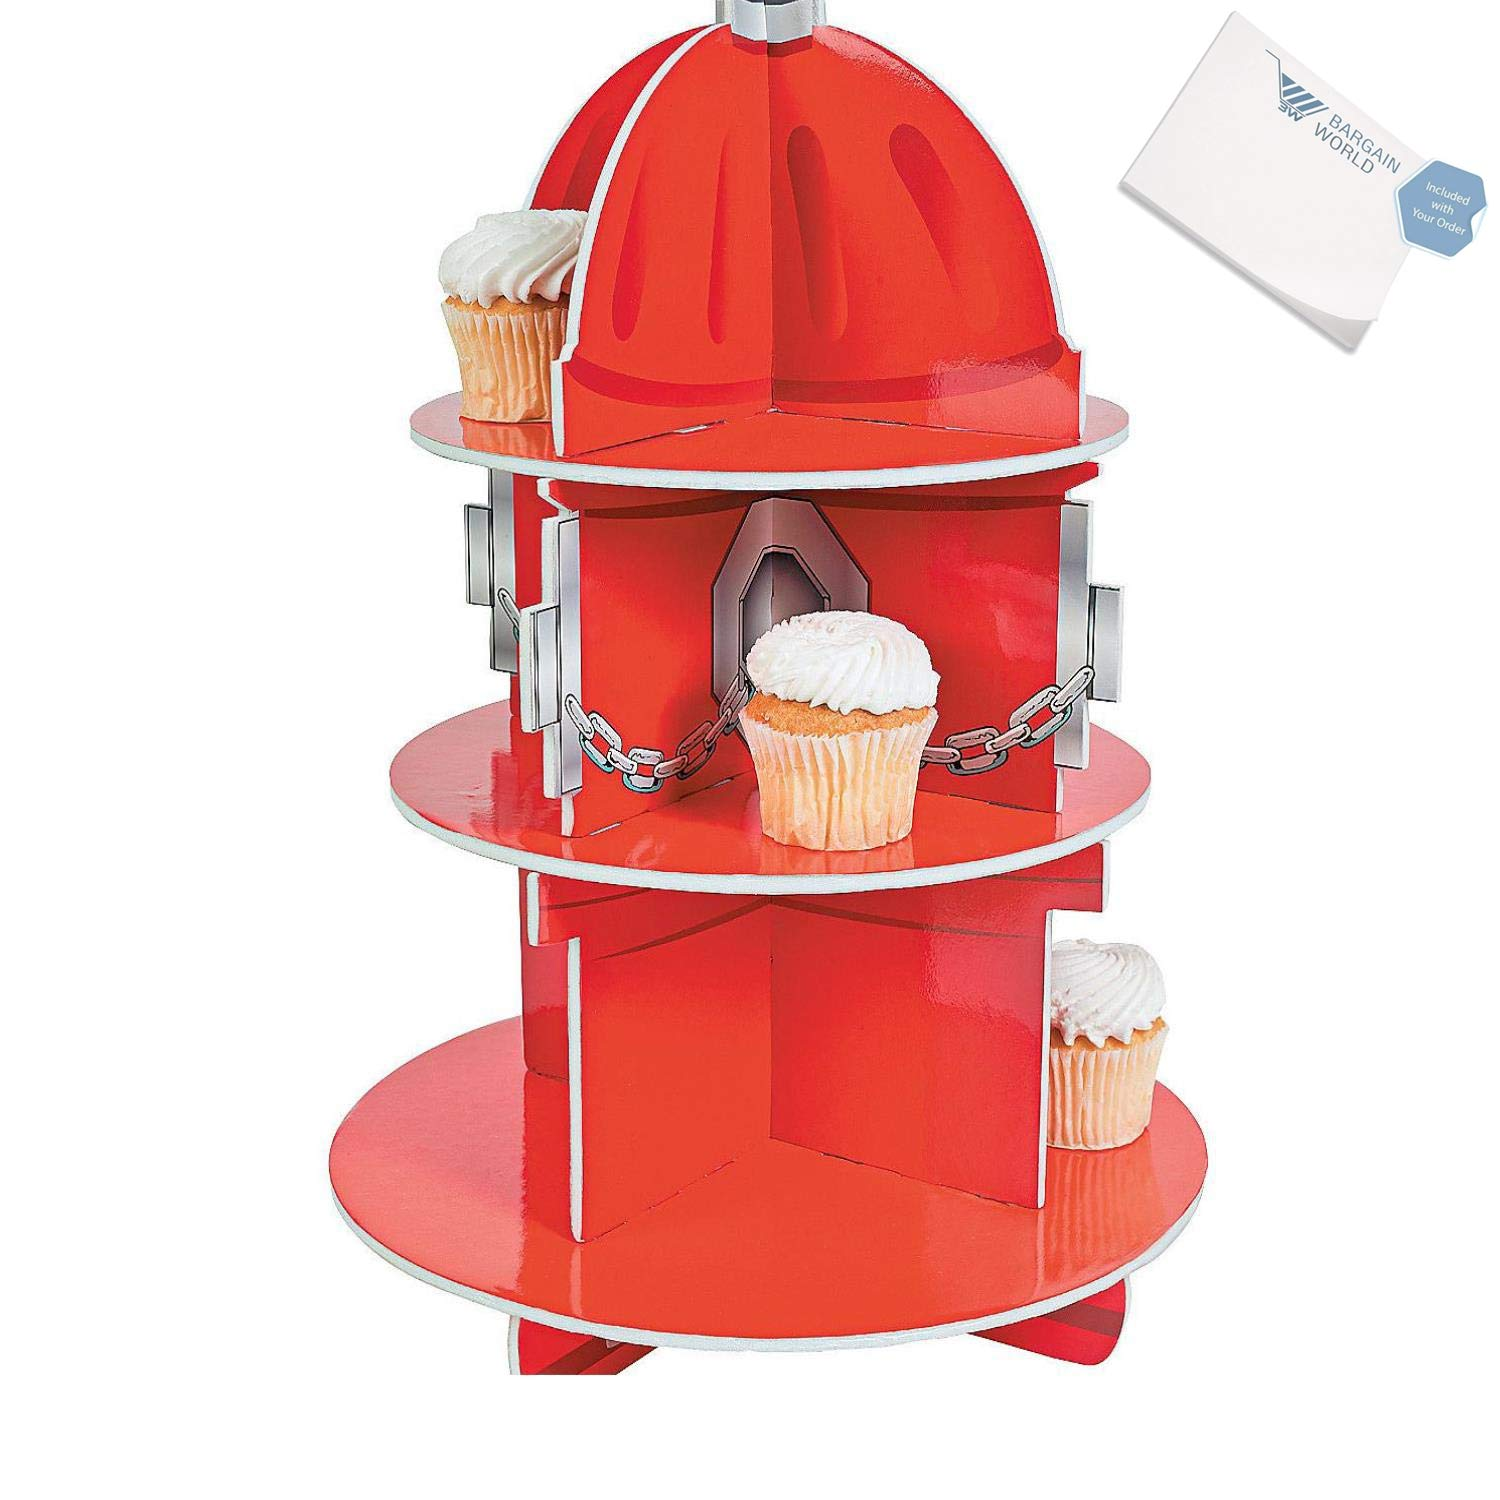 Bargain World Fire Hydrant Cupcake Holder (With Sticky Notes)